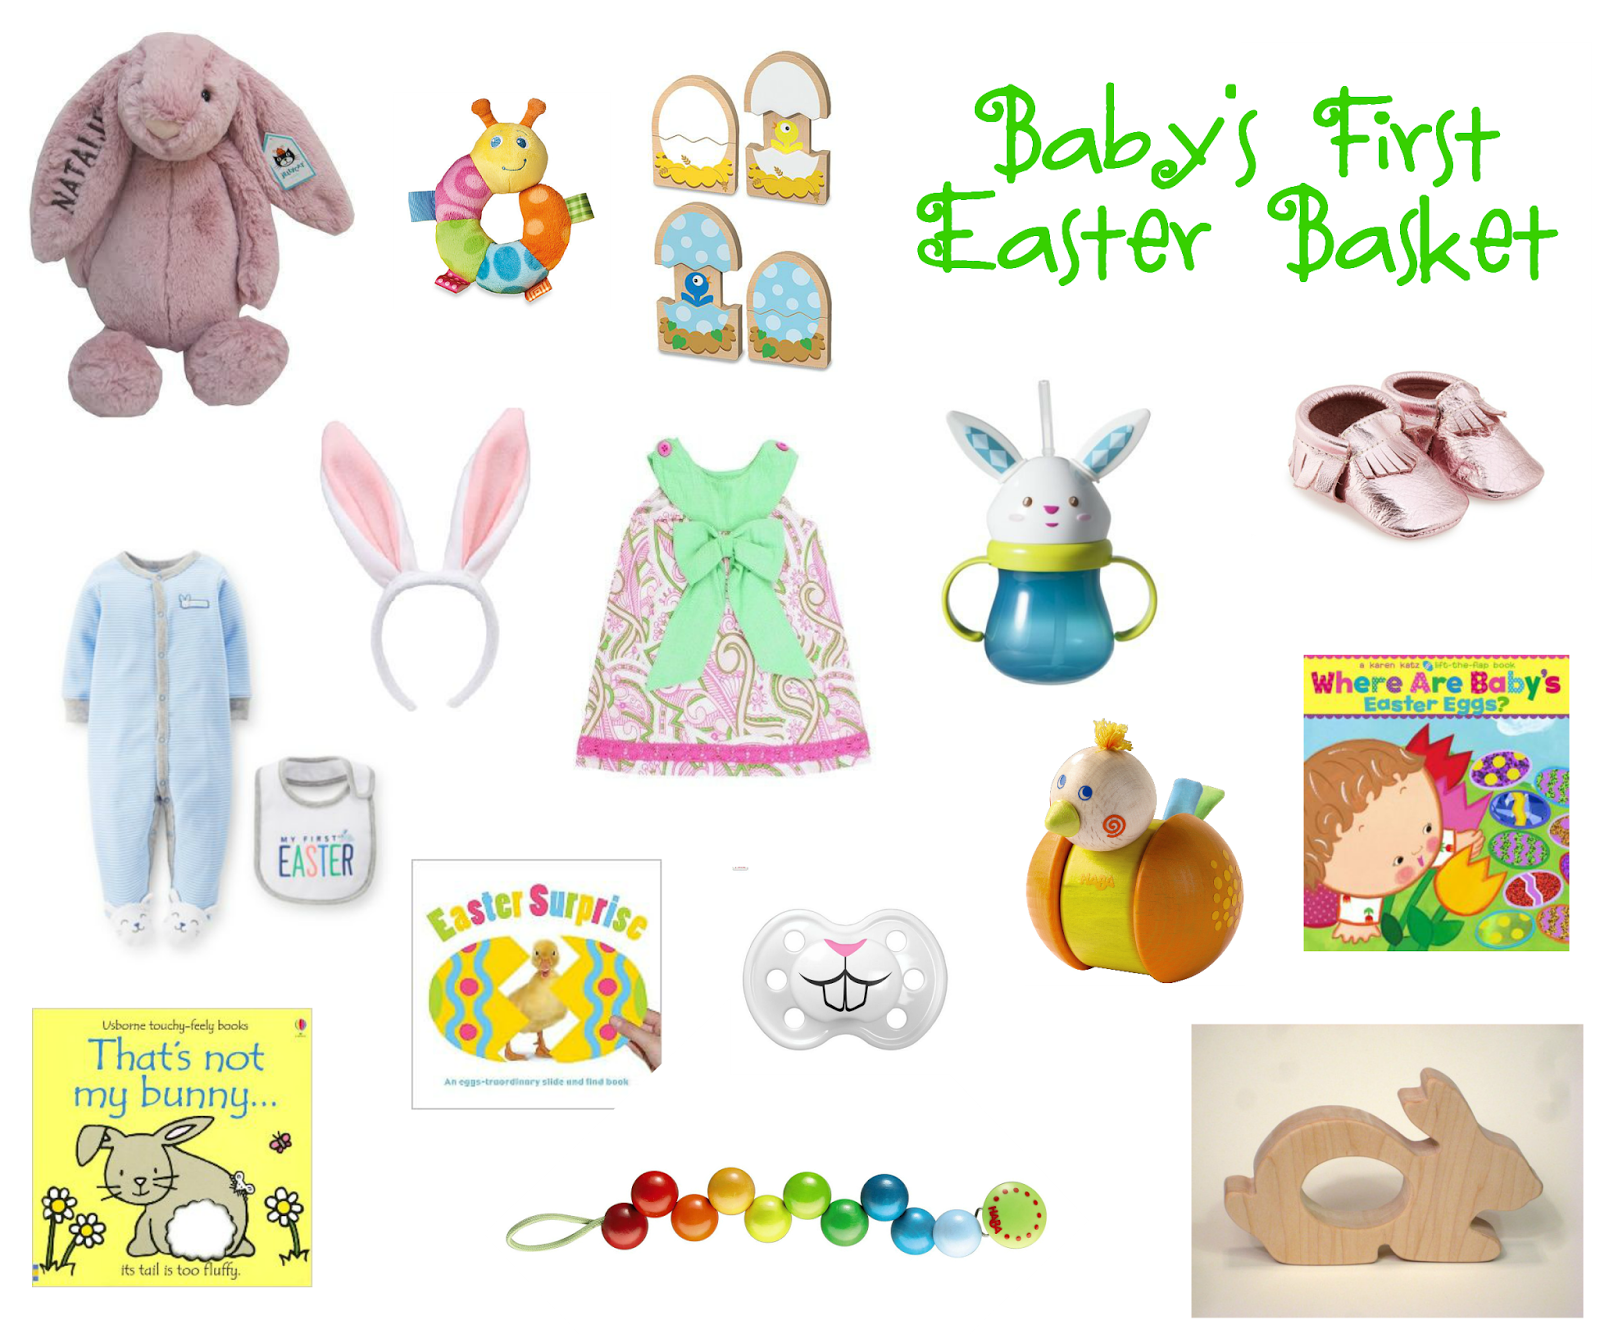 Babys first easter basket see full post for baby toddler babys first easter basket see full post for baby toddler easter basket negle Choice Image